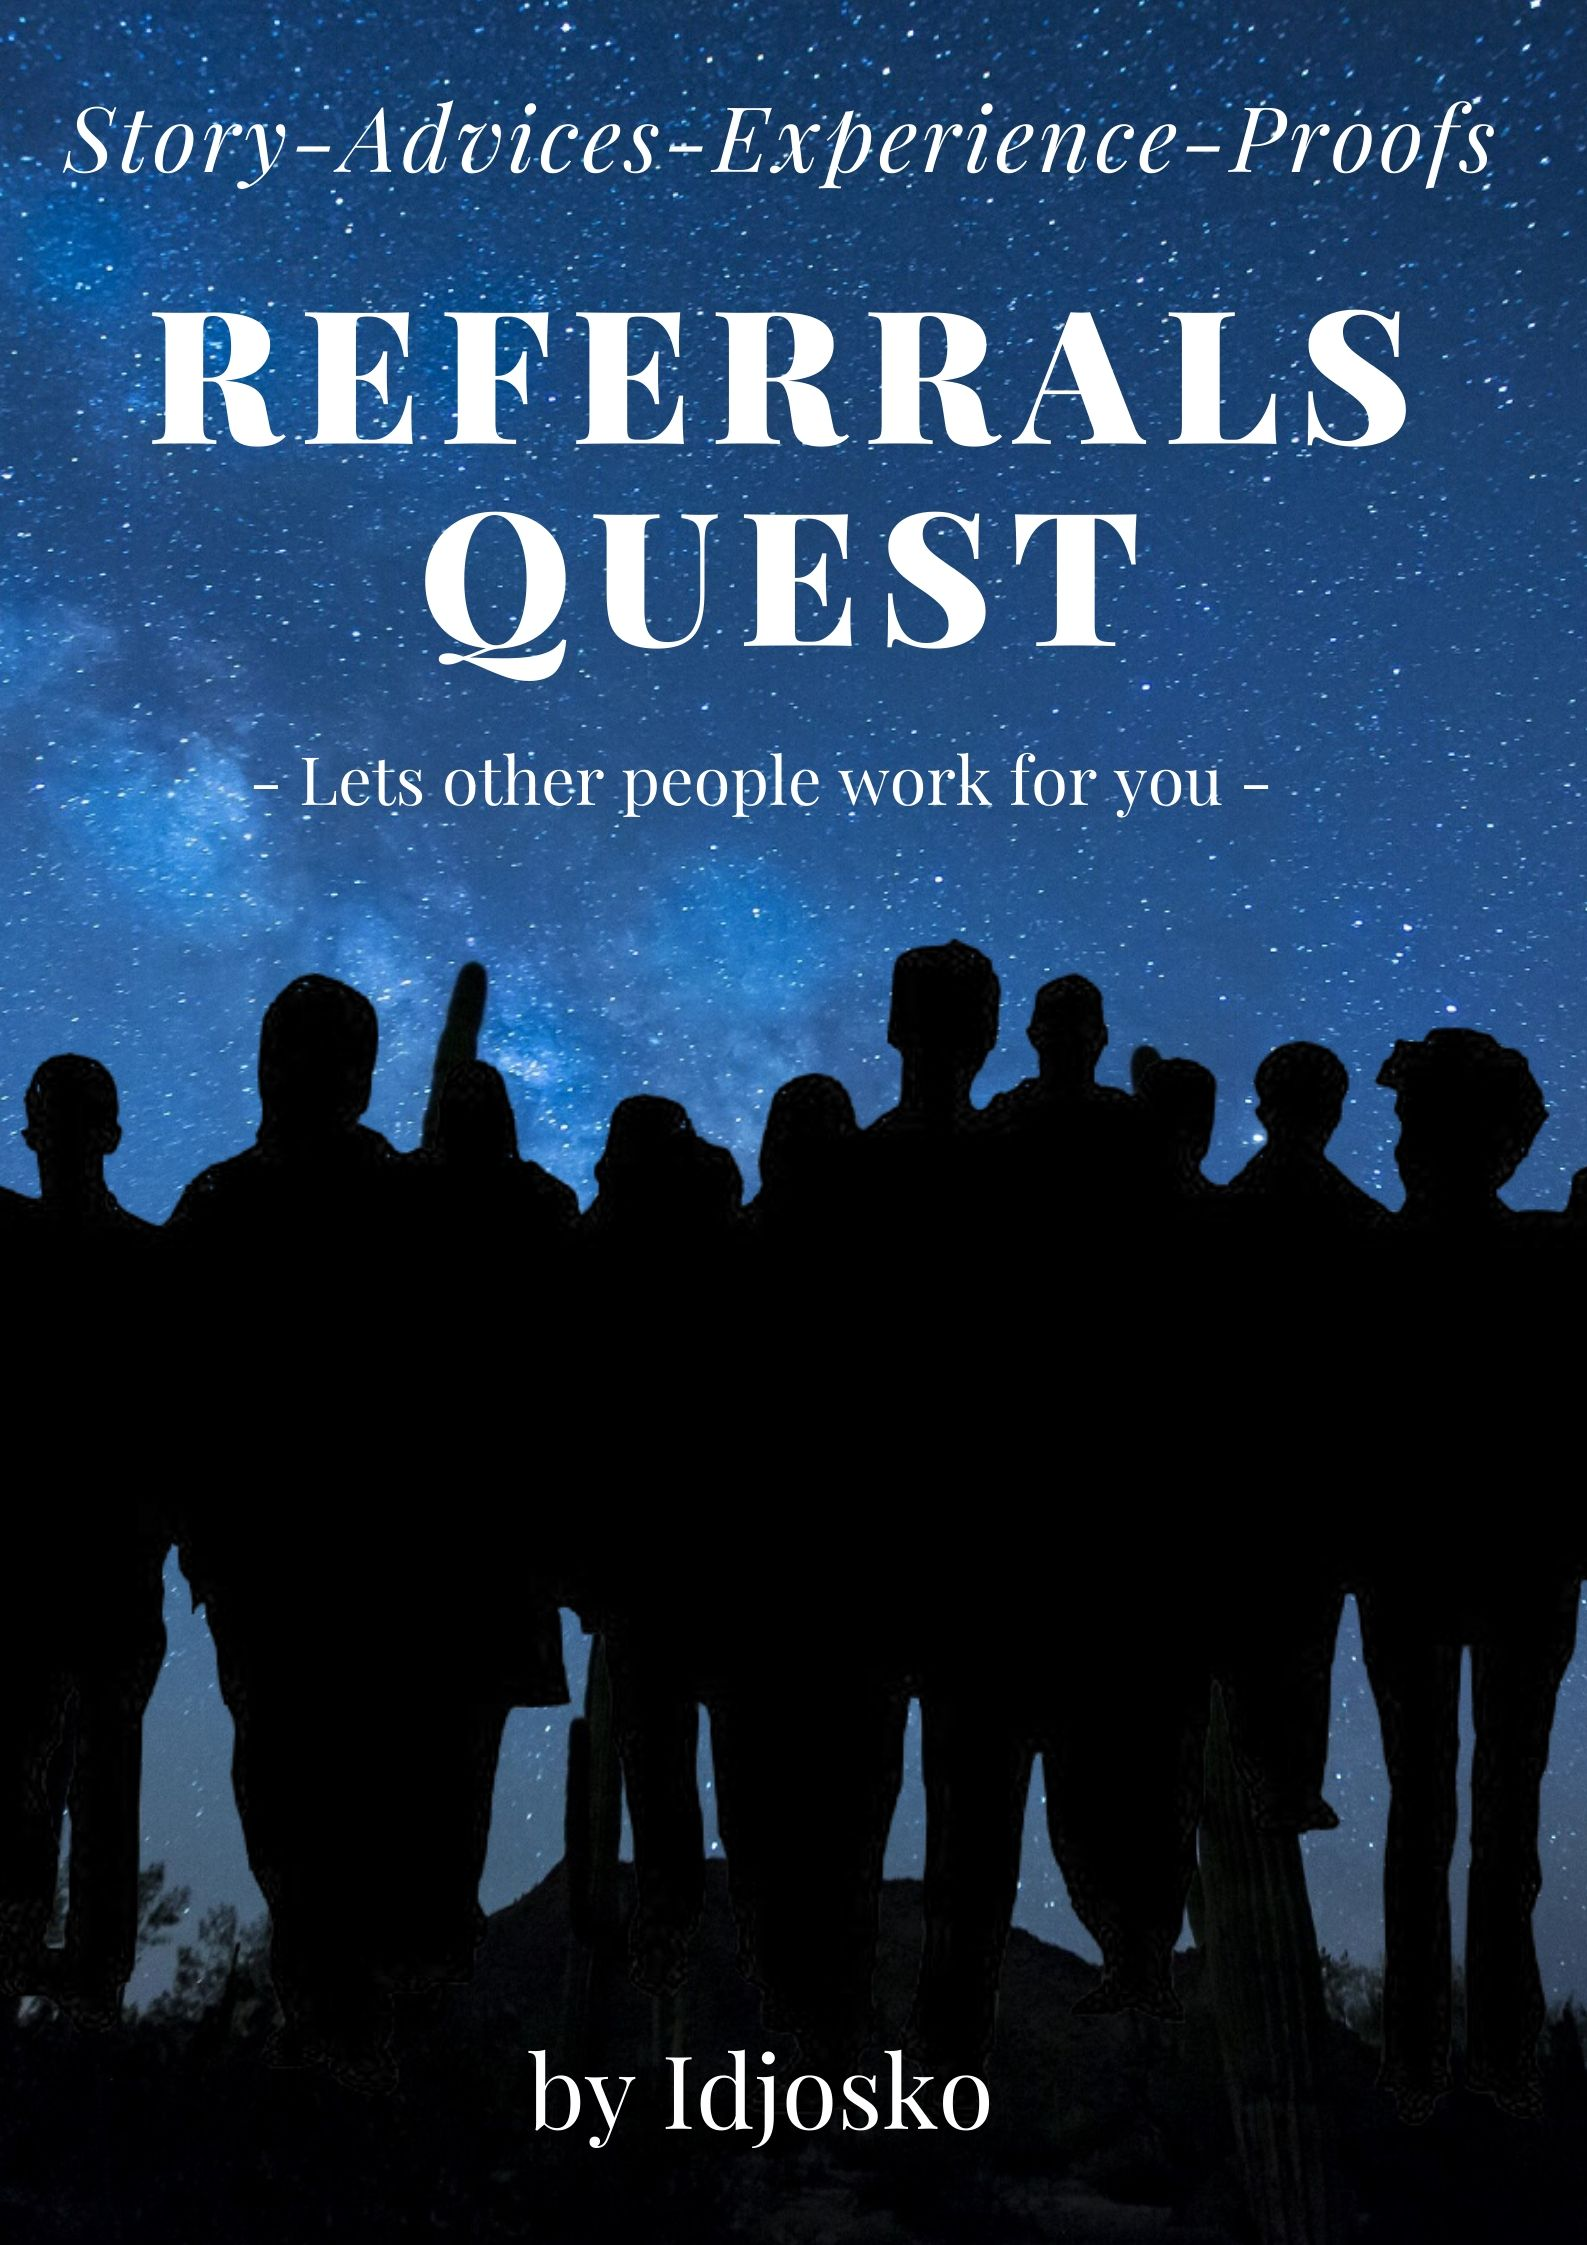 I will reveal all referrals marketing secrets in this eBook